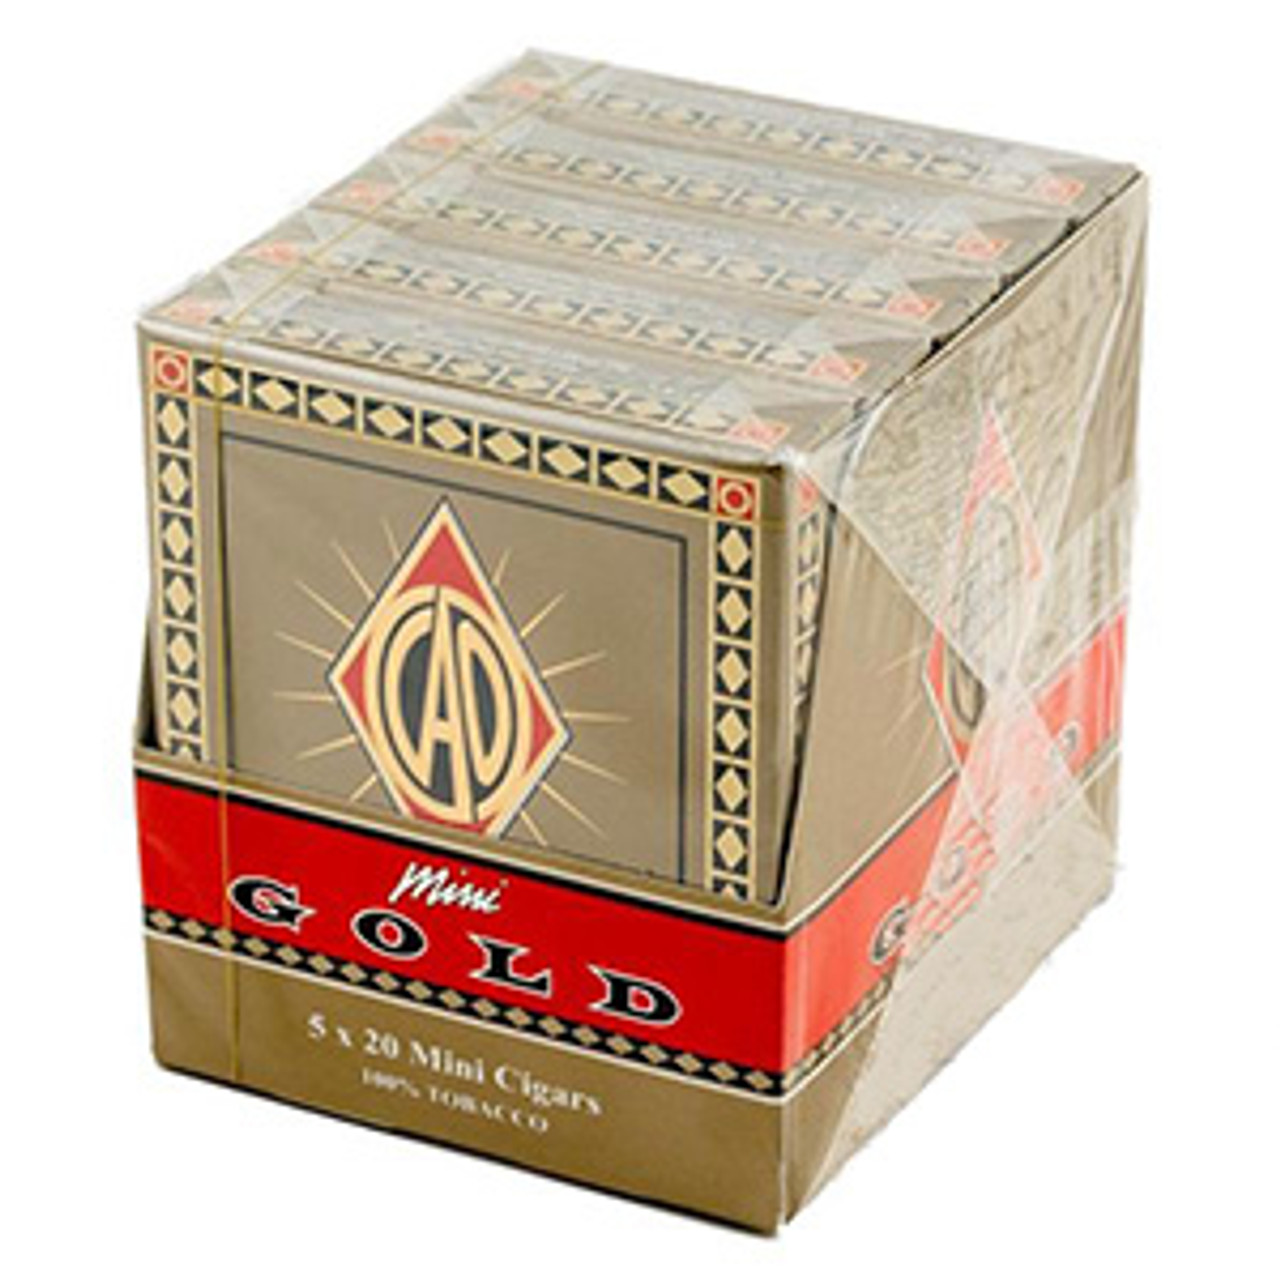 CAO Gold Mini Cigars - 3 1/2 x 20 (5 Packs of 20)